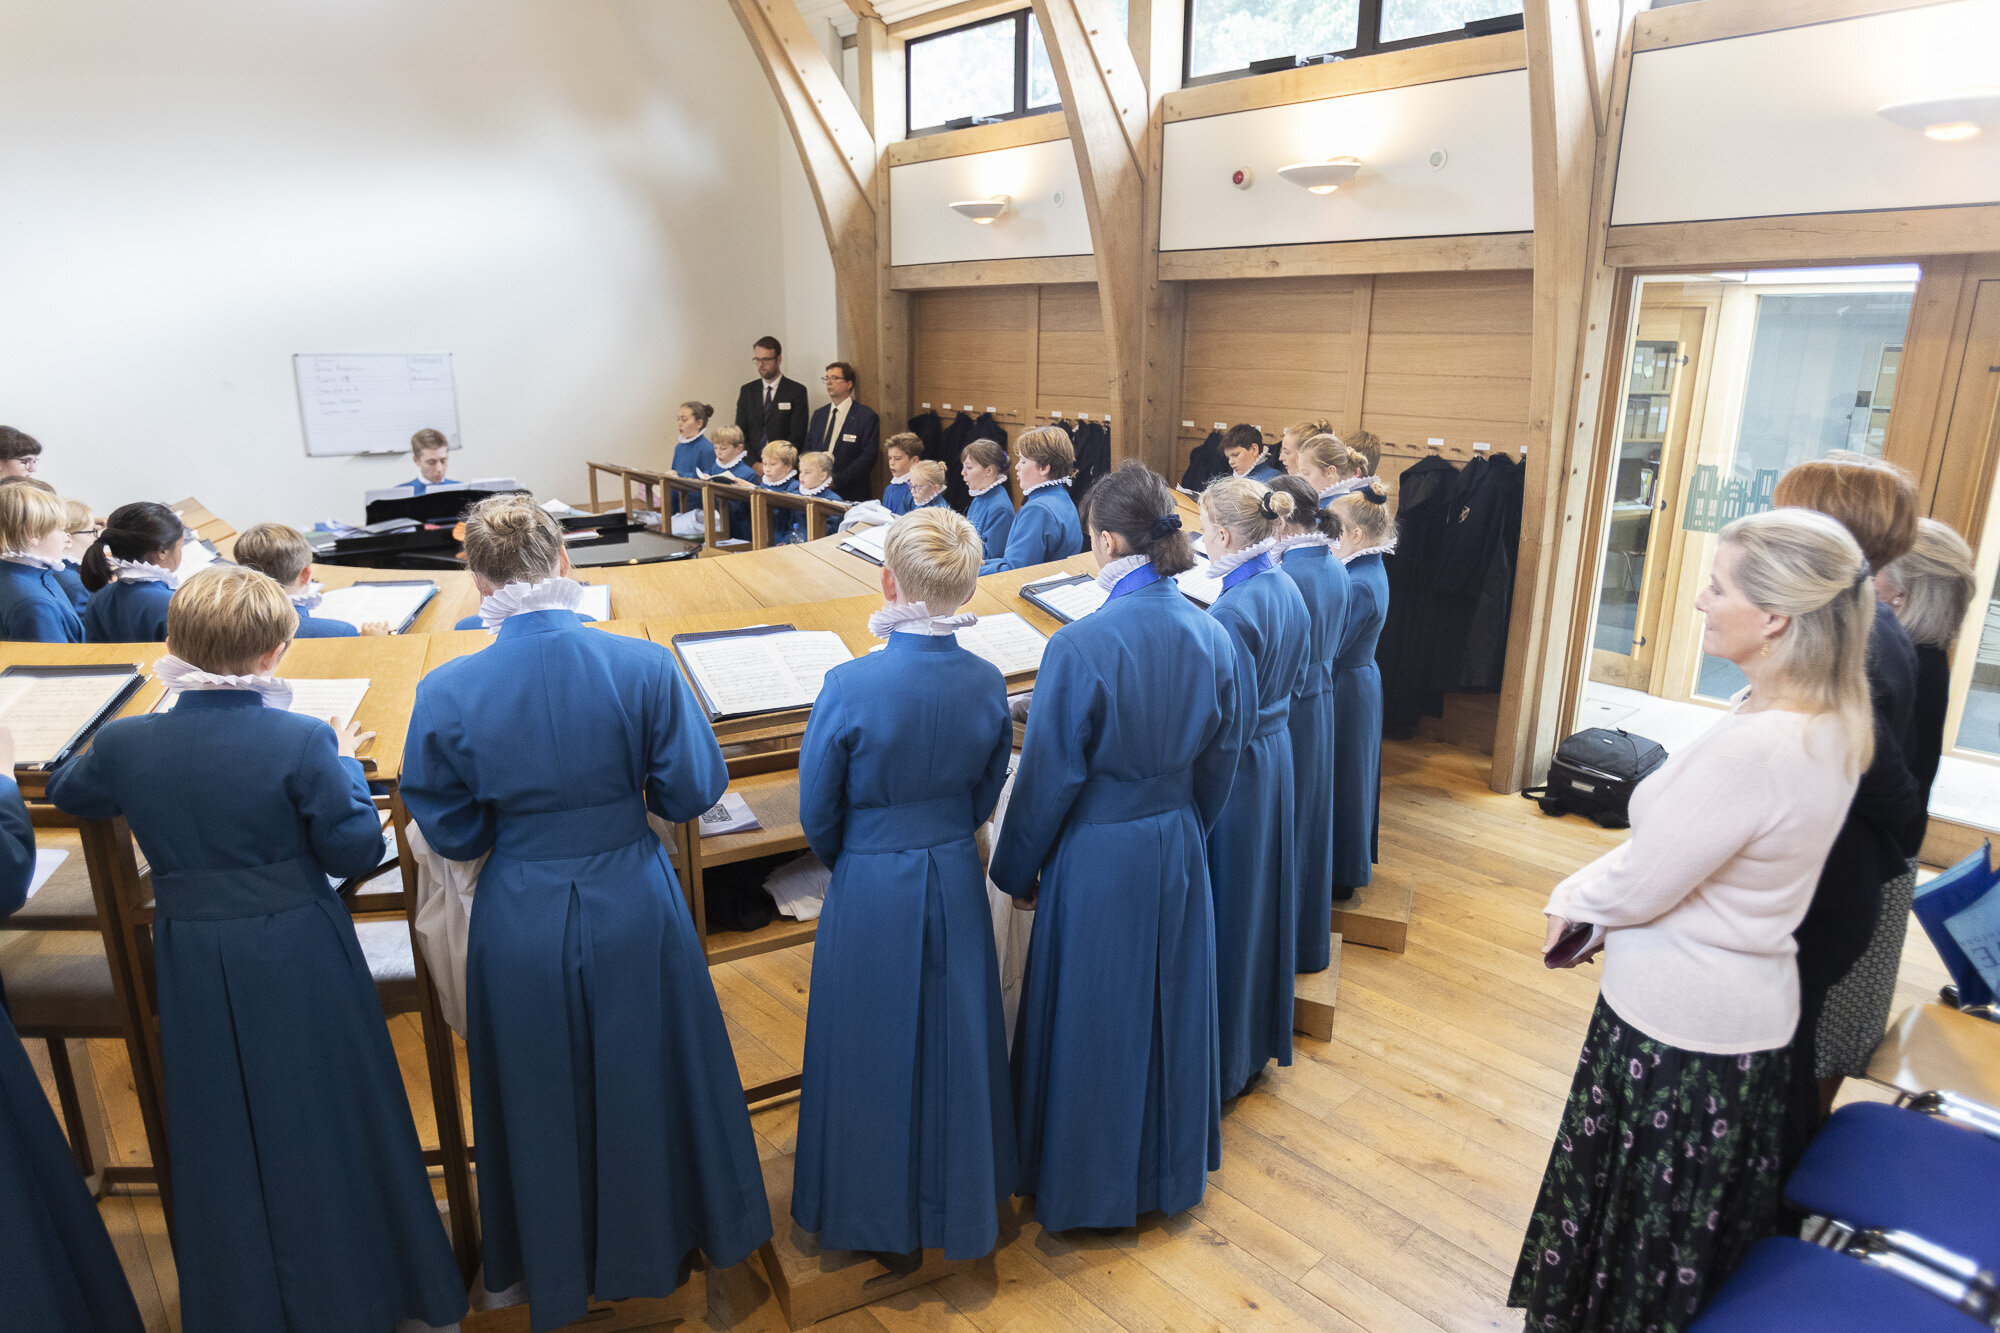 Her Highness listens to the choristers rehearsing for Choral Evensong